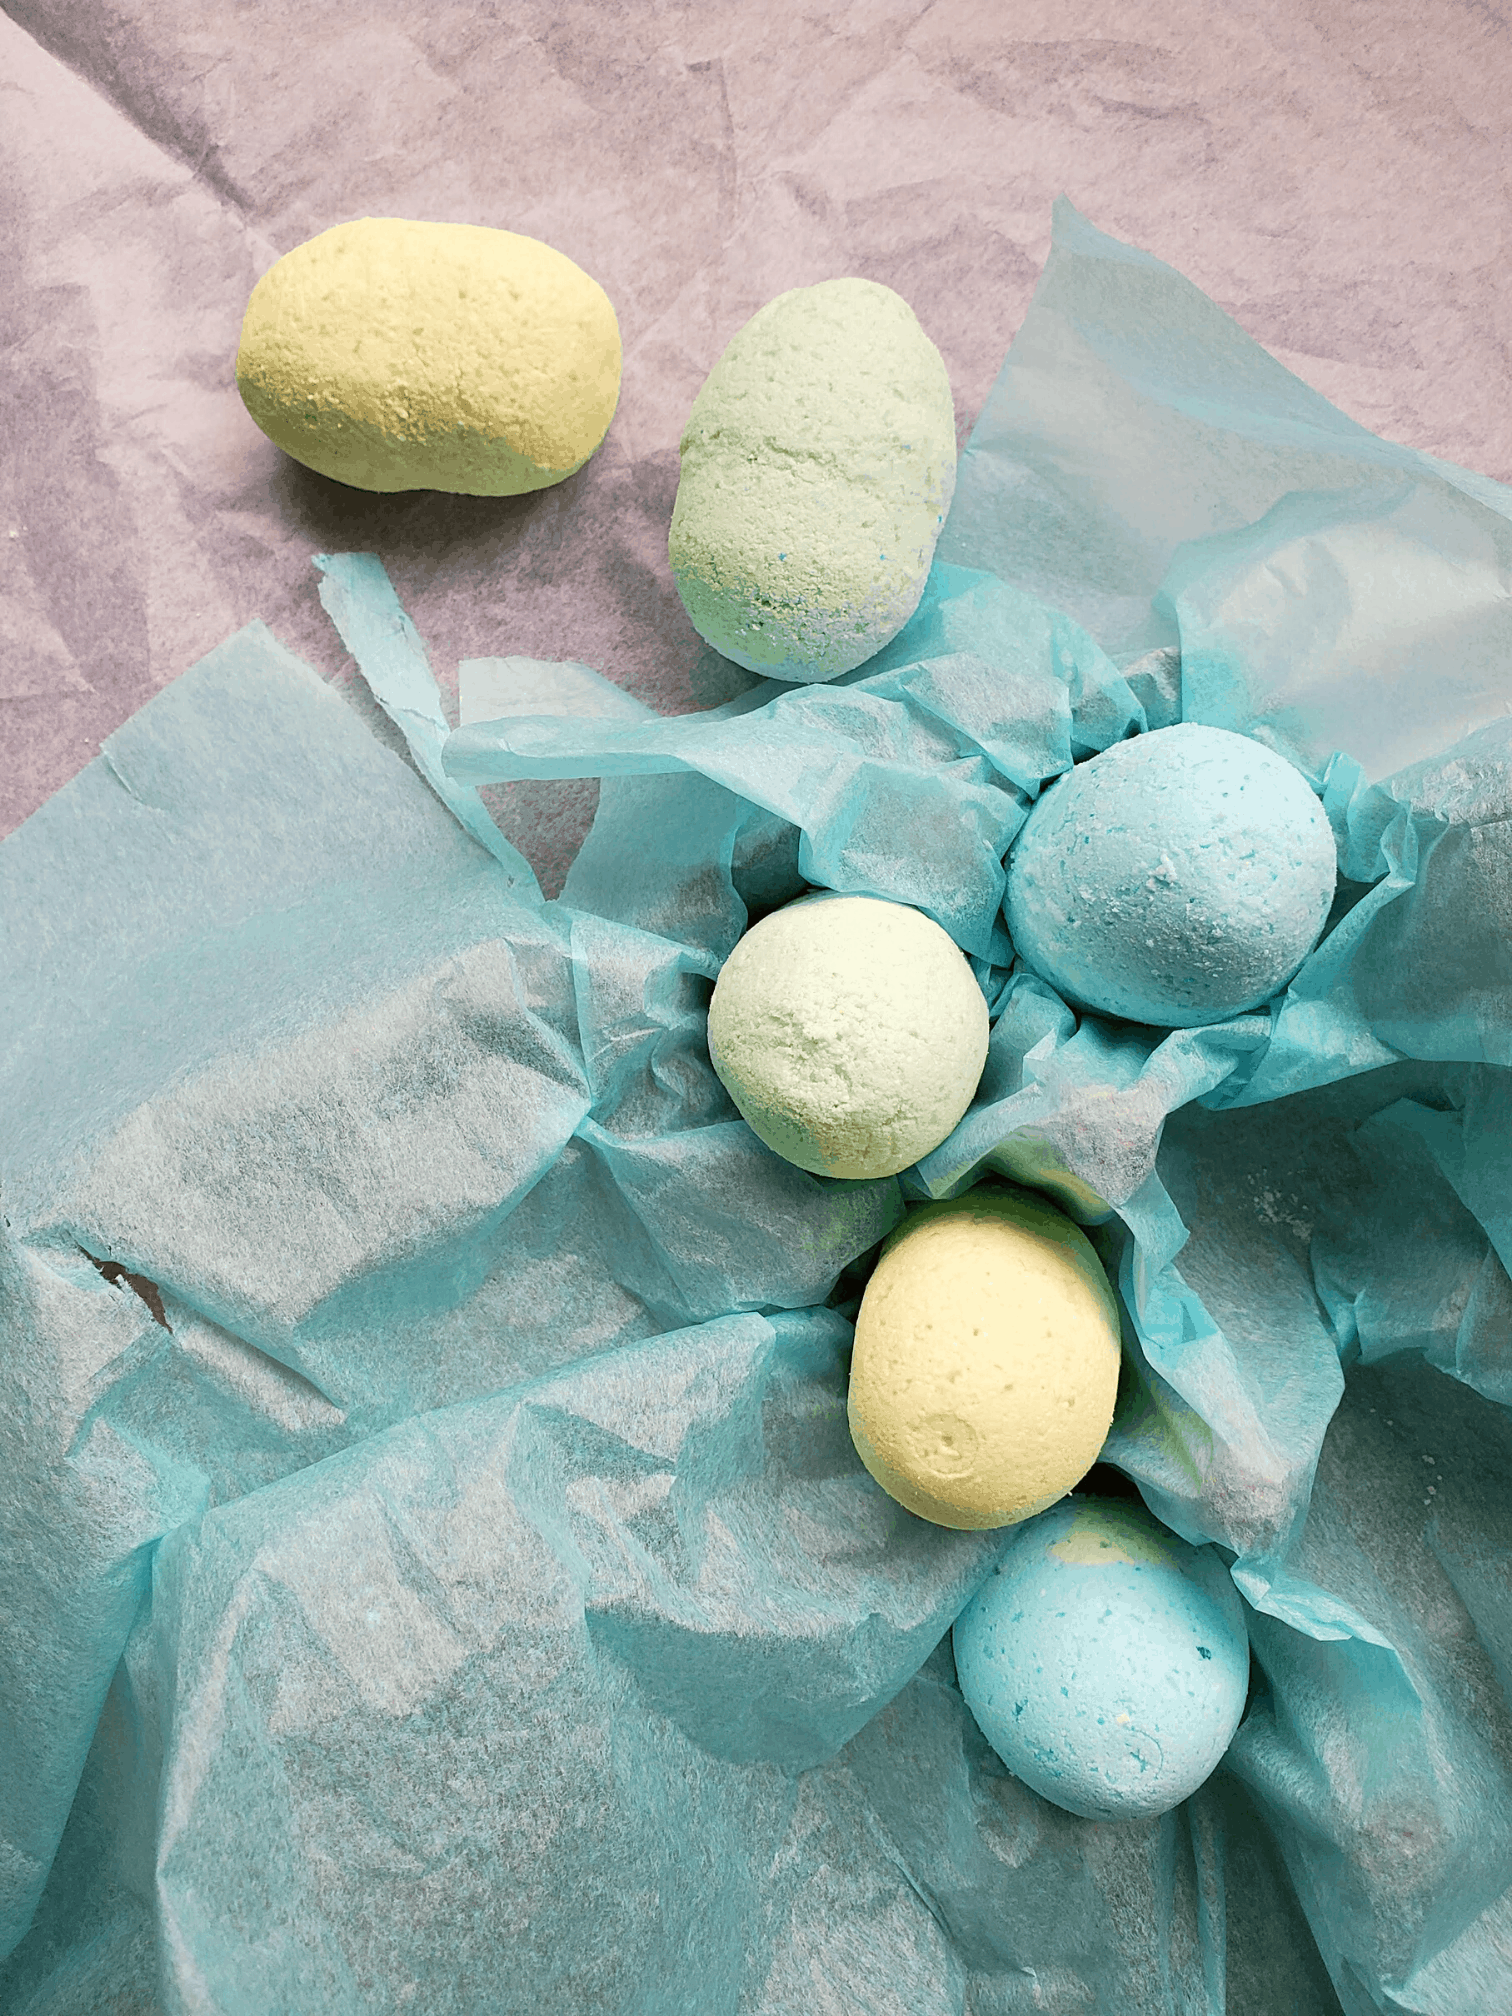 shea butter bath bombs in a carton and on a table